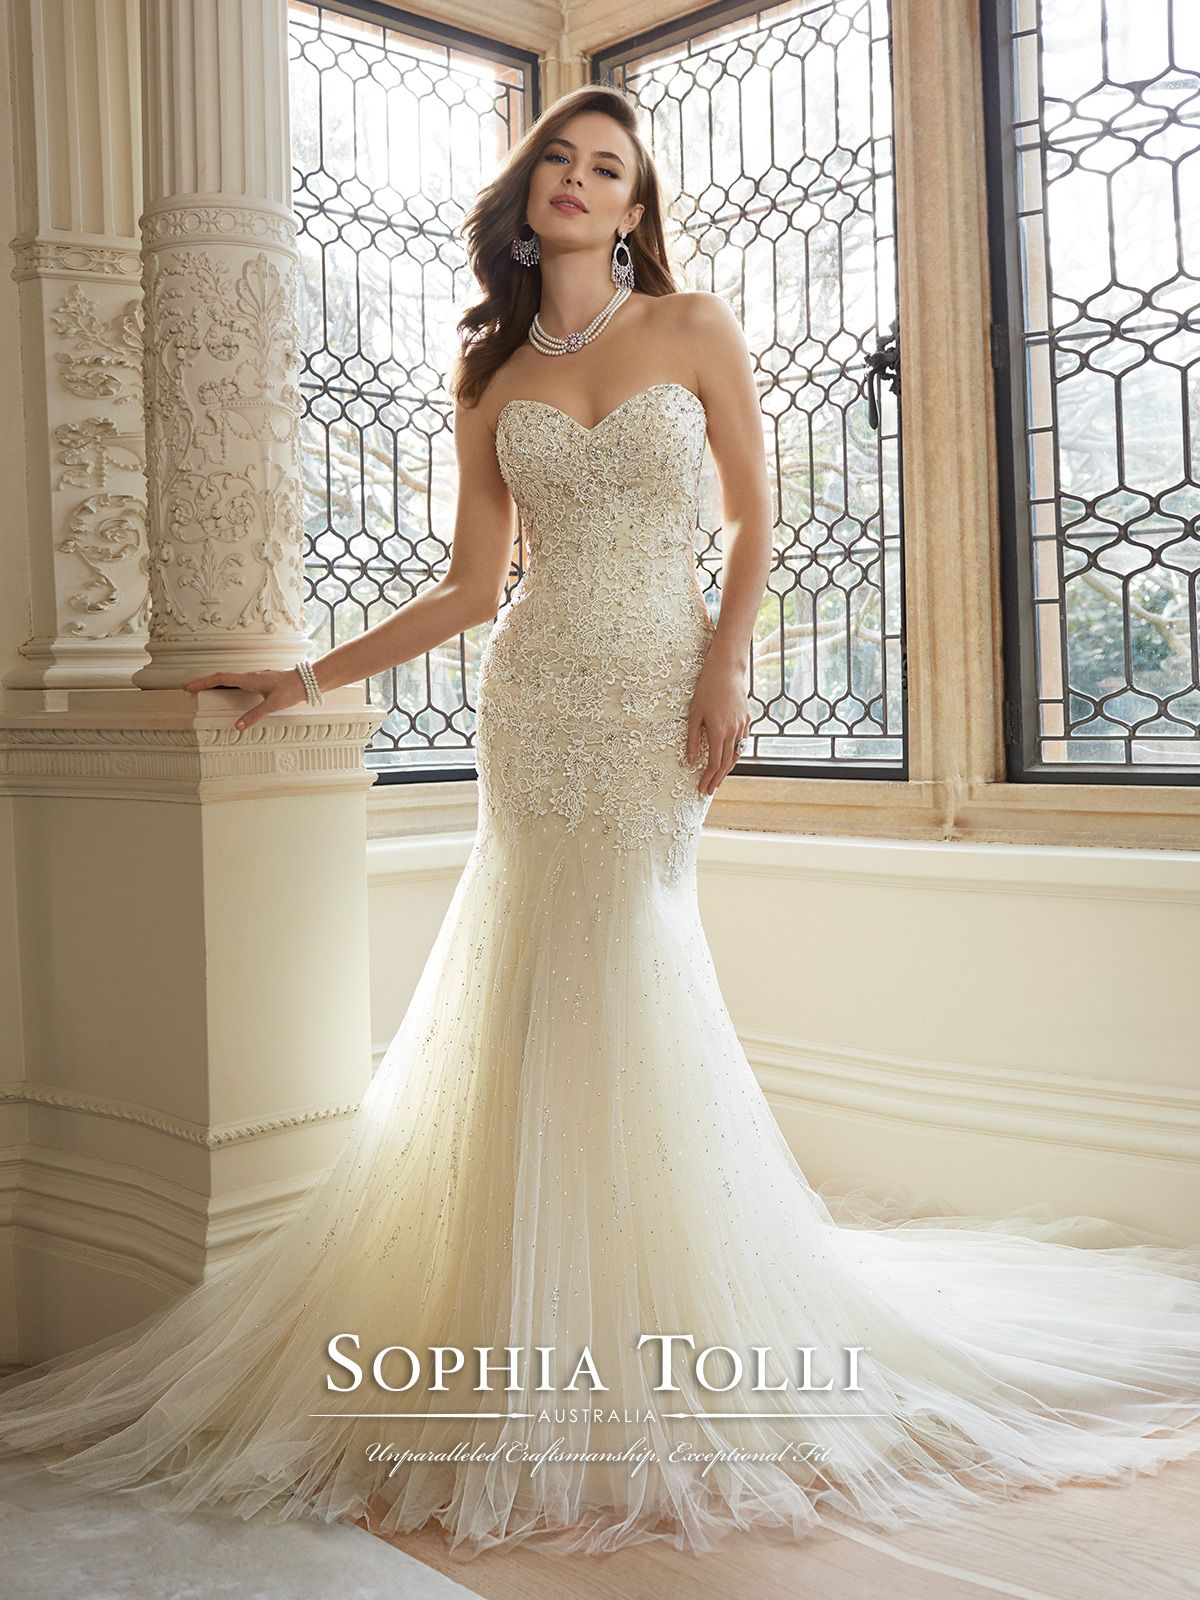 Sophia Tolli - Y11625 – Amira - Strapless sweetheart soft tulle fit and flare wedding gown with lace appliqué dropped waist bodice, sparkling crystal and cluster scattered beading decorate bodice and gathered tulle skirt, back corset, chapel length train. Removable spaghetti and halter straps included.  Sizes: 0 – 28  Colors: Magnolia/Ivory, Ivory, White